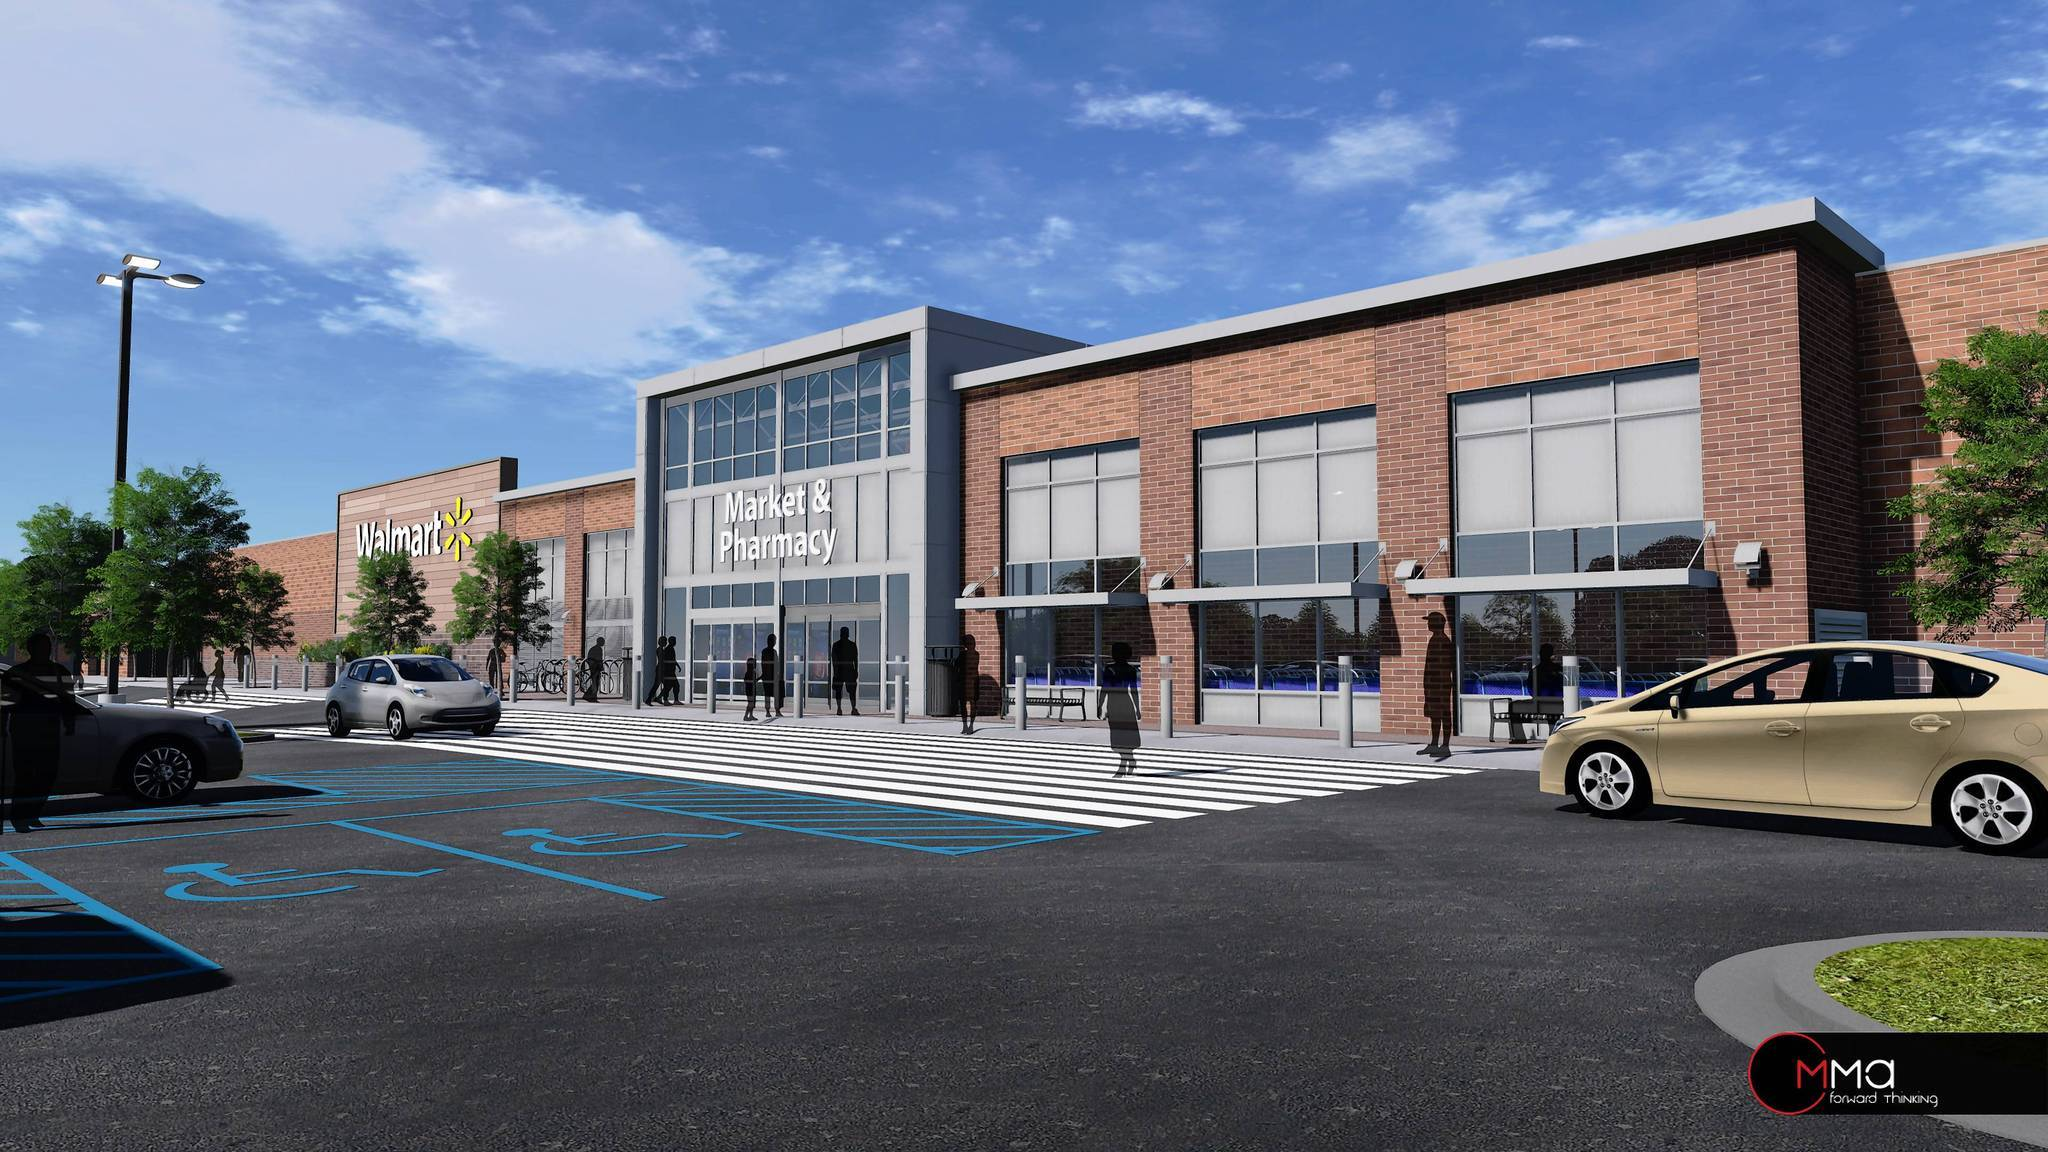 An artist rendering shows what the Walmart store in the planned 25th Street Station hsopping center in Remington would look like.